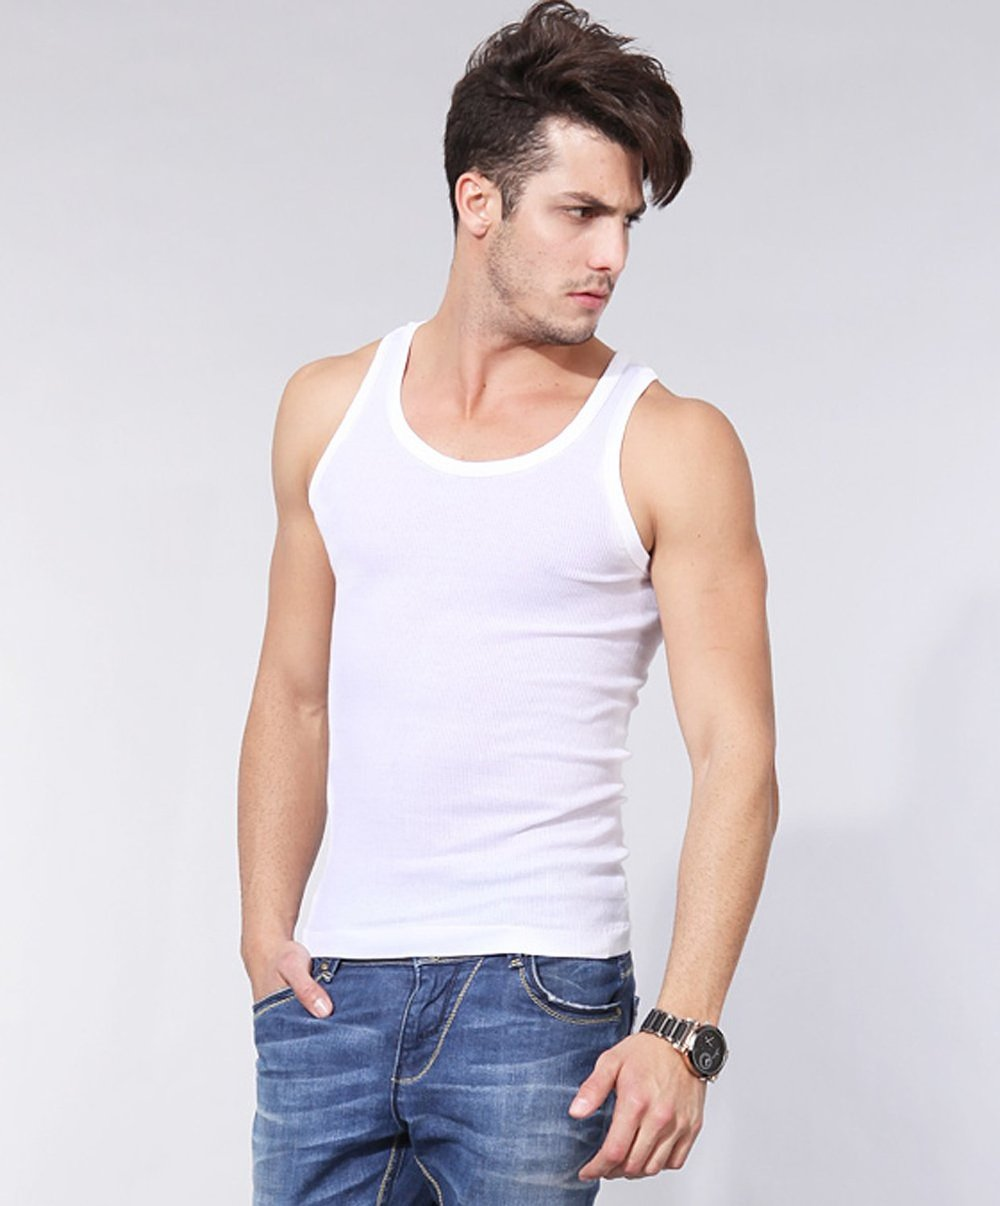 299cd977f03ab Mens Blank Extra Long Tank Top With Skater Fit - Buy Mens Tank Top ...